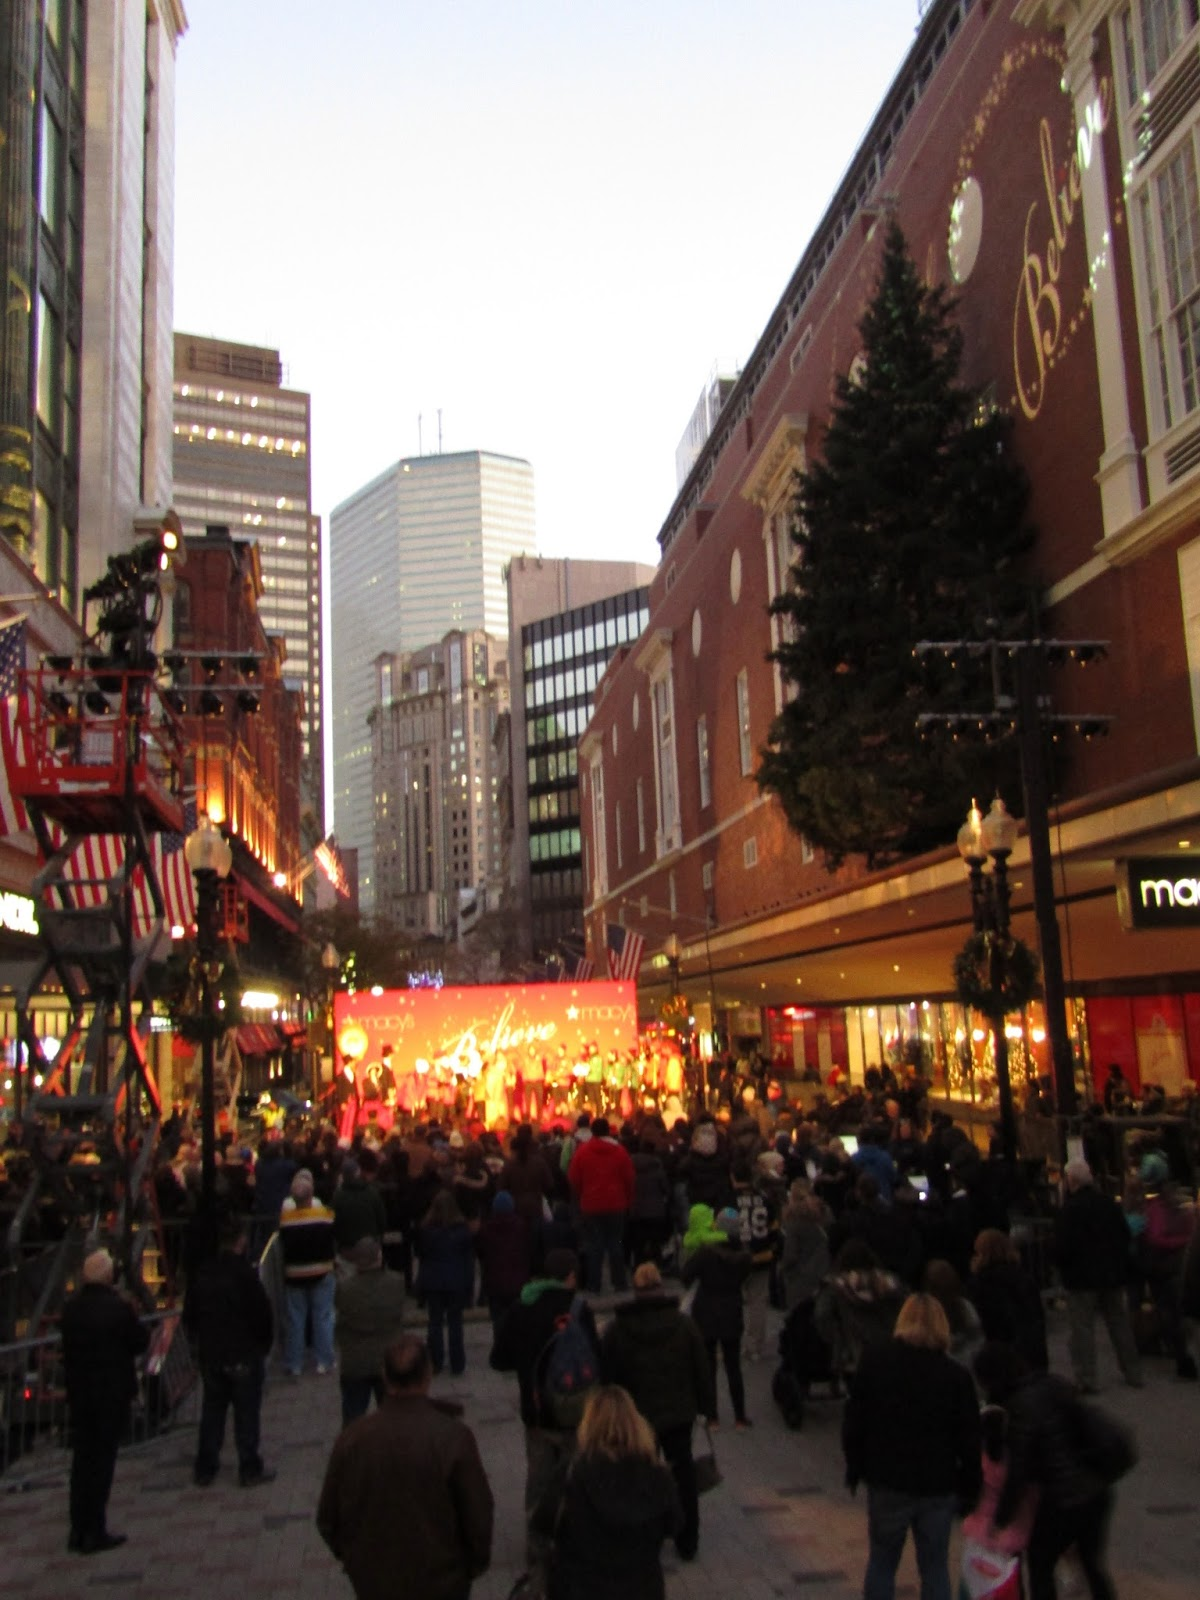 The Boston Foodie: Darlene Love Kicks Off The Holidays In Downtown ...